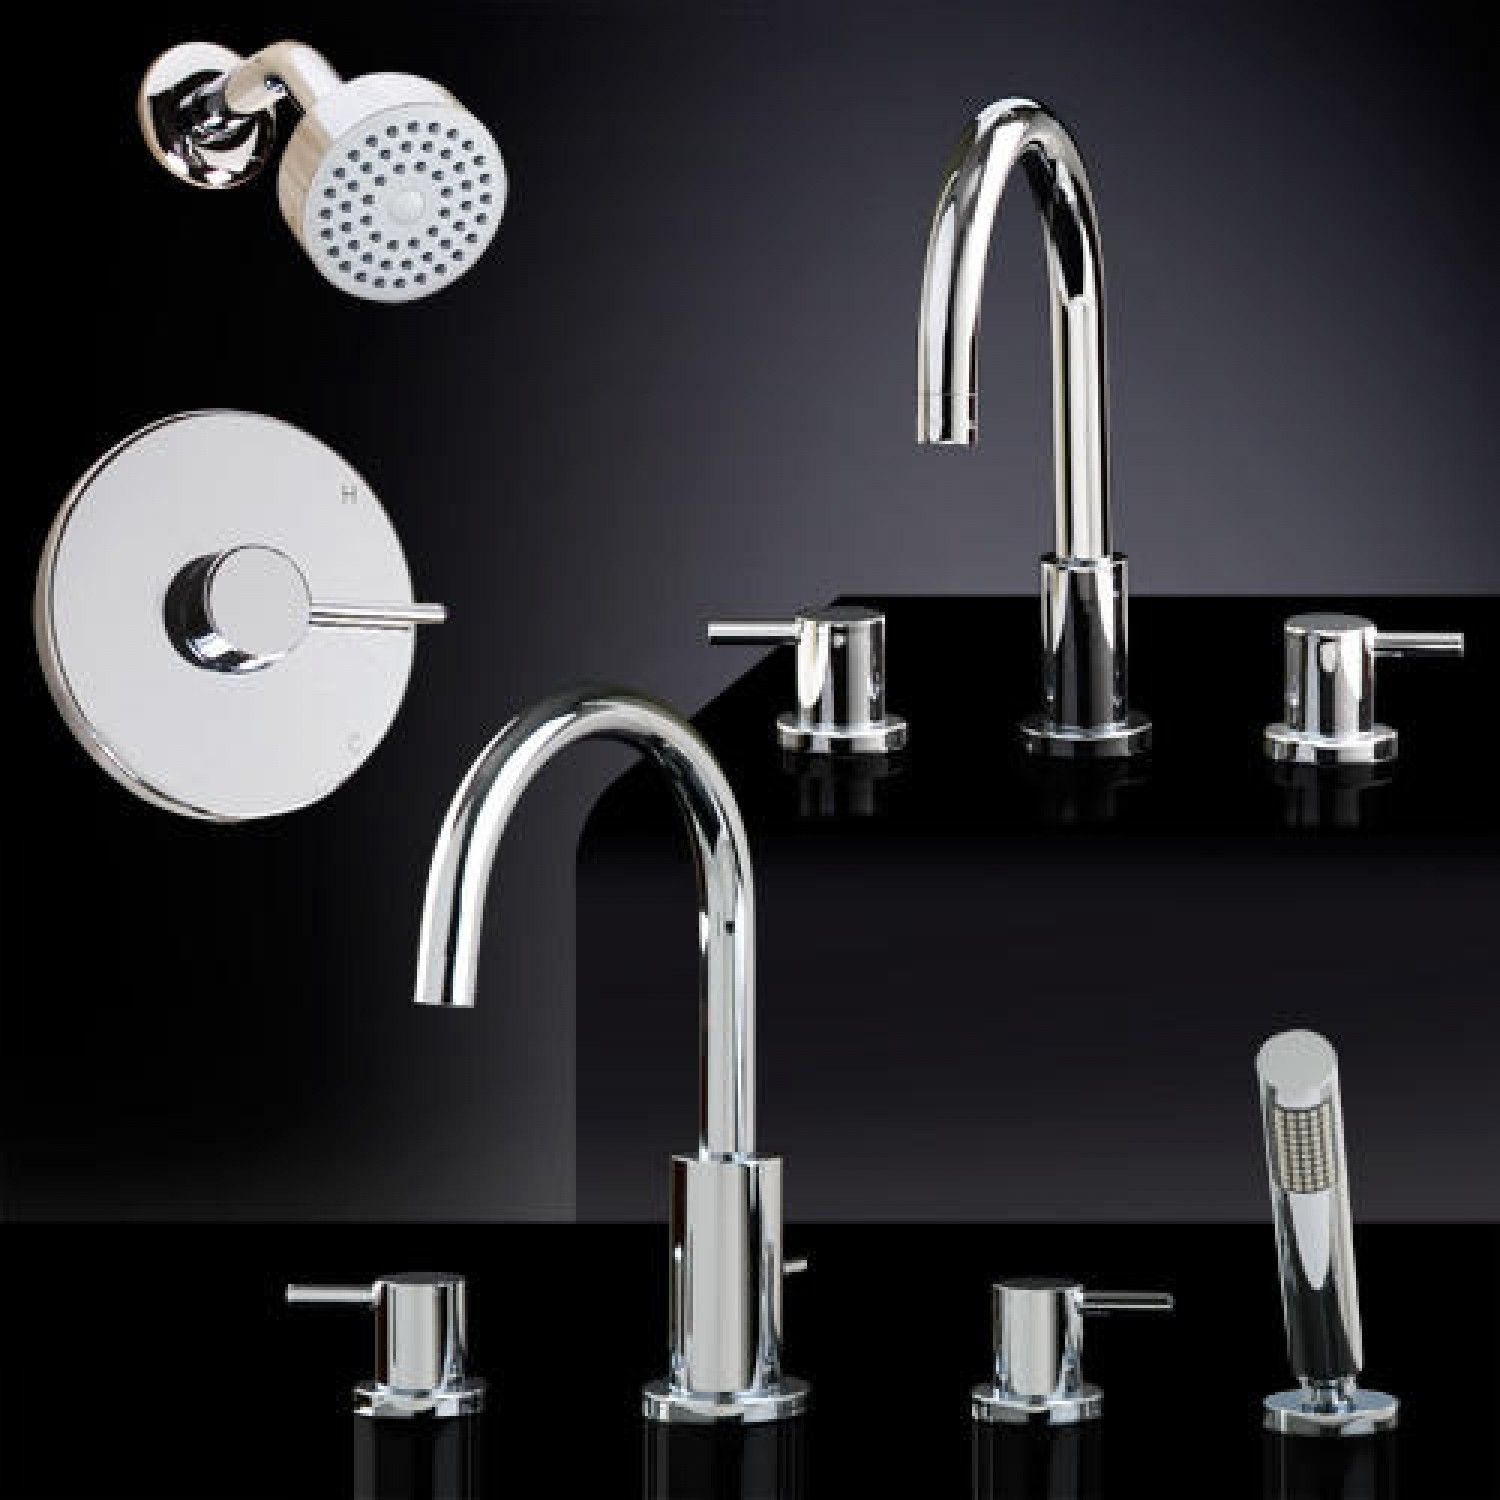 rotunda tub shower set 1 with widespread sink faucet bathroom throughout size 1500 x 1500